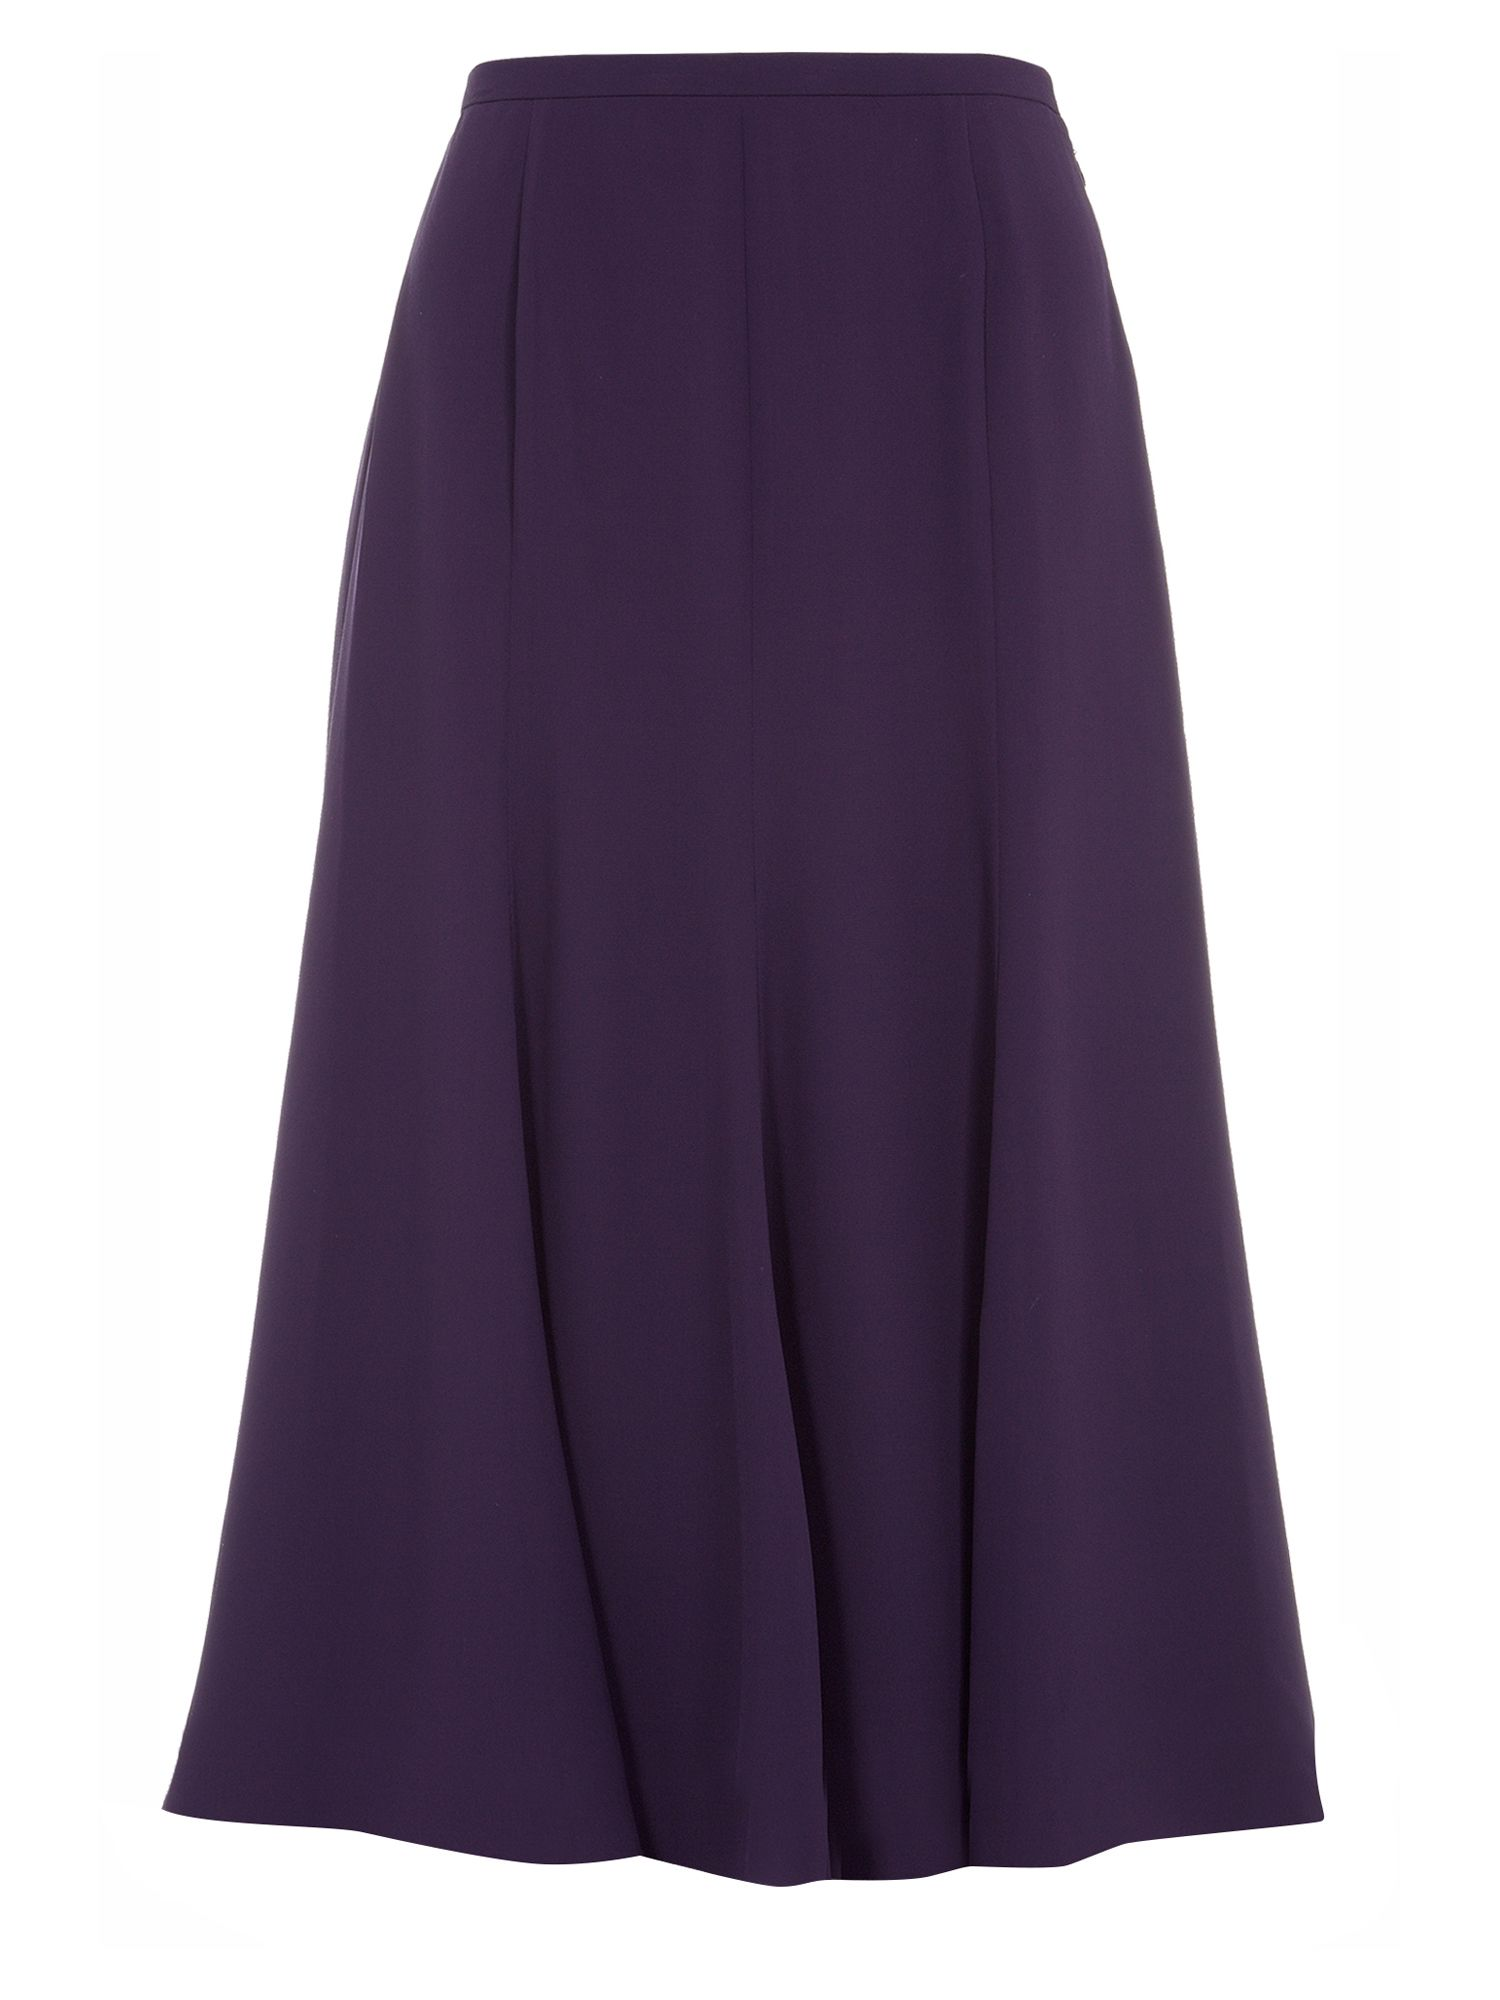 Fit and flare chiffon skirt